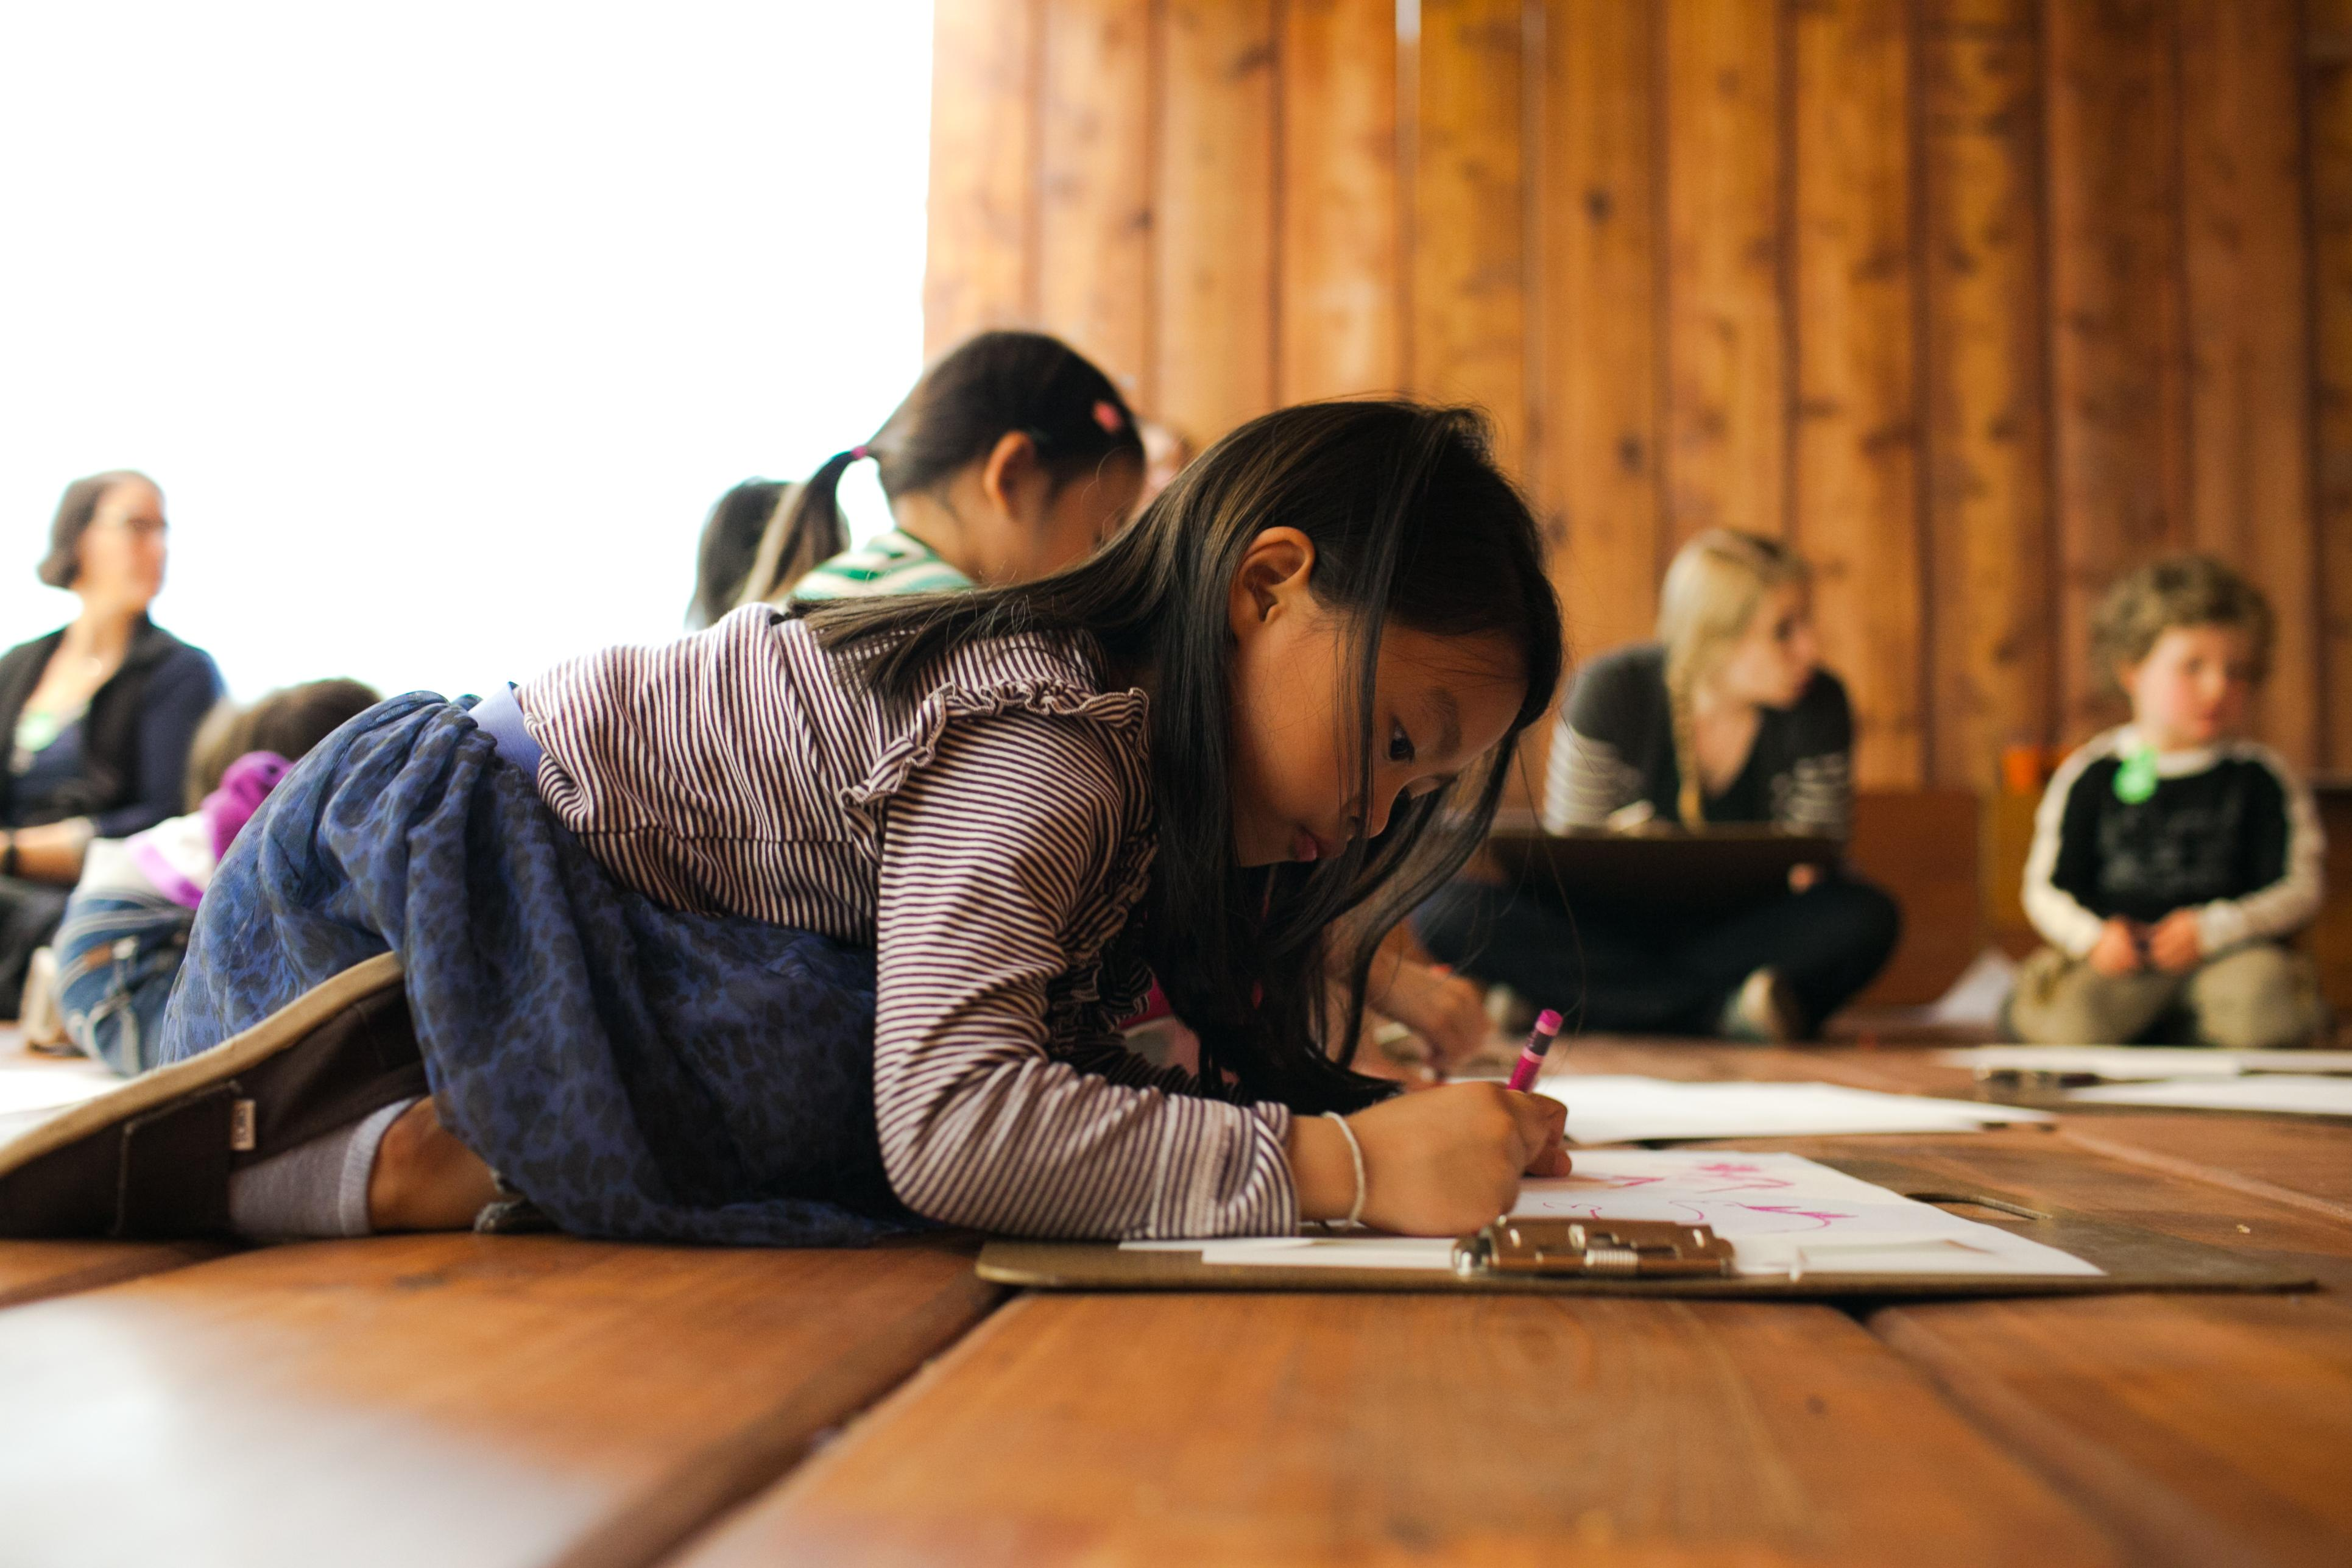 A young child lays on the ground to draw on a clipboard with a crayon.